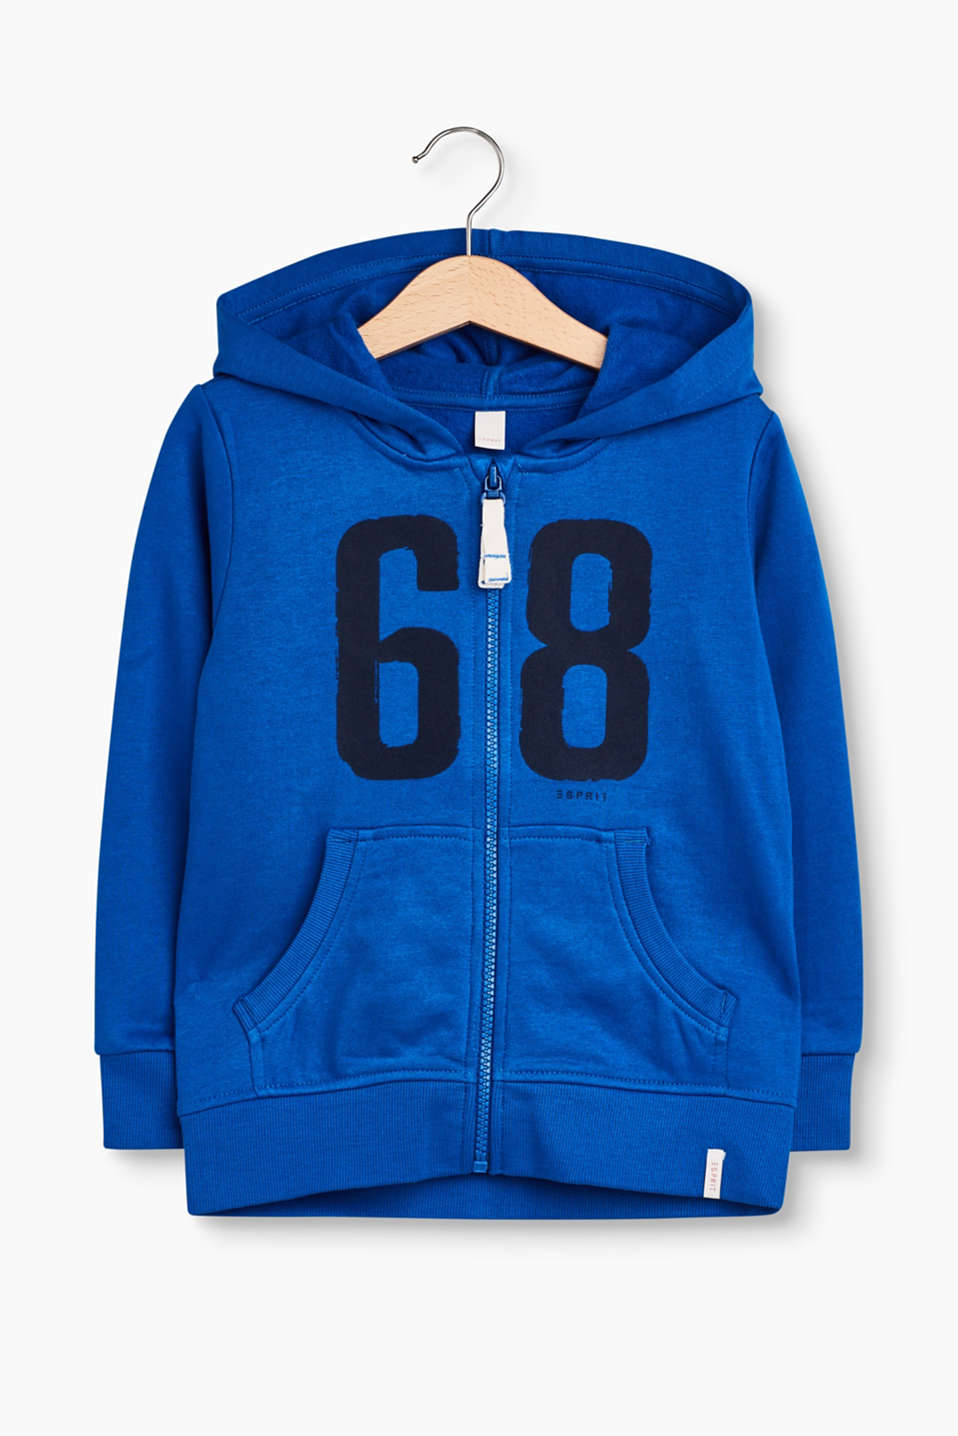 Esprit - Sweatshirt jacket with printed numbers